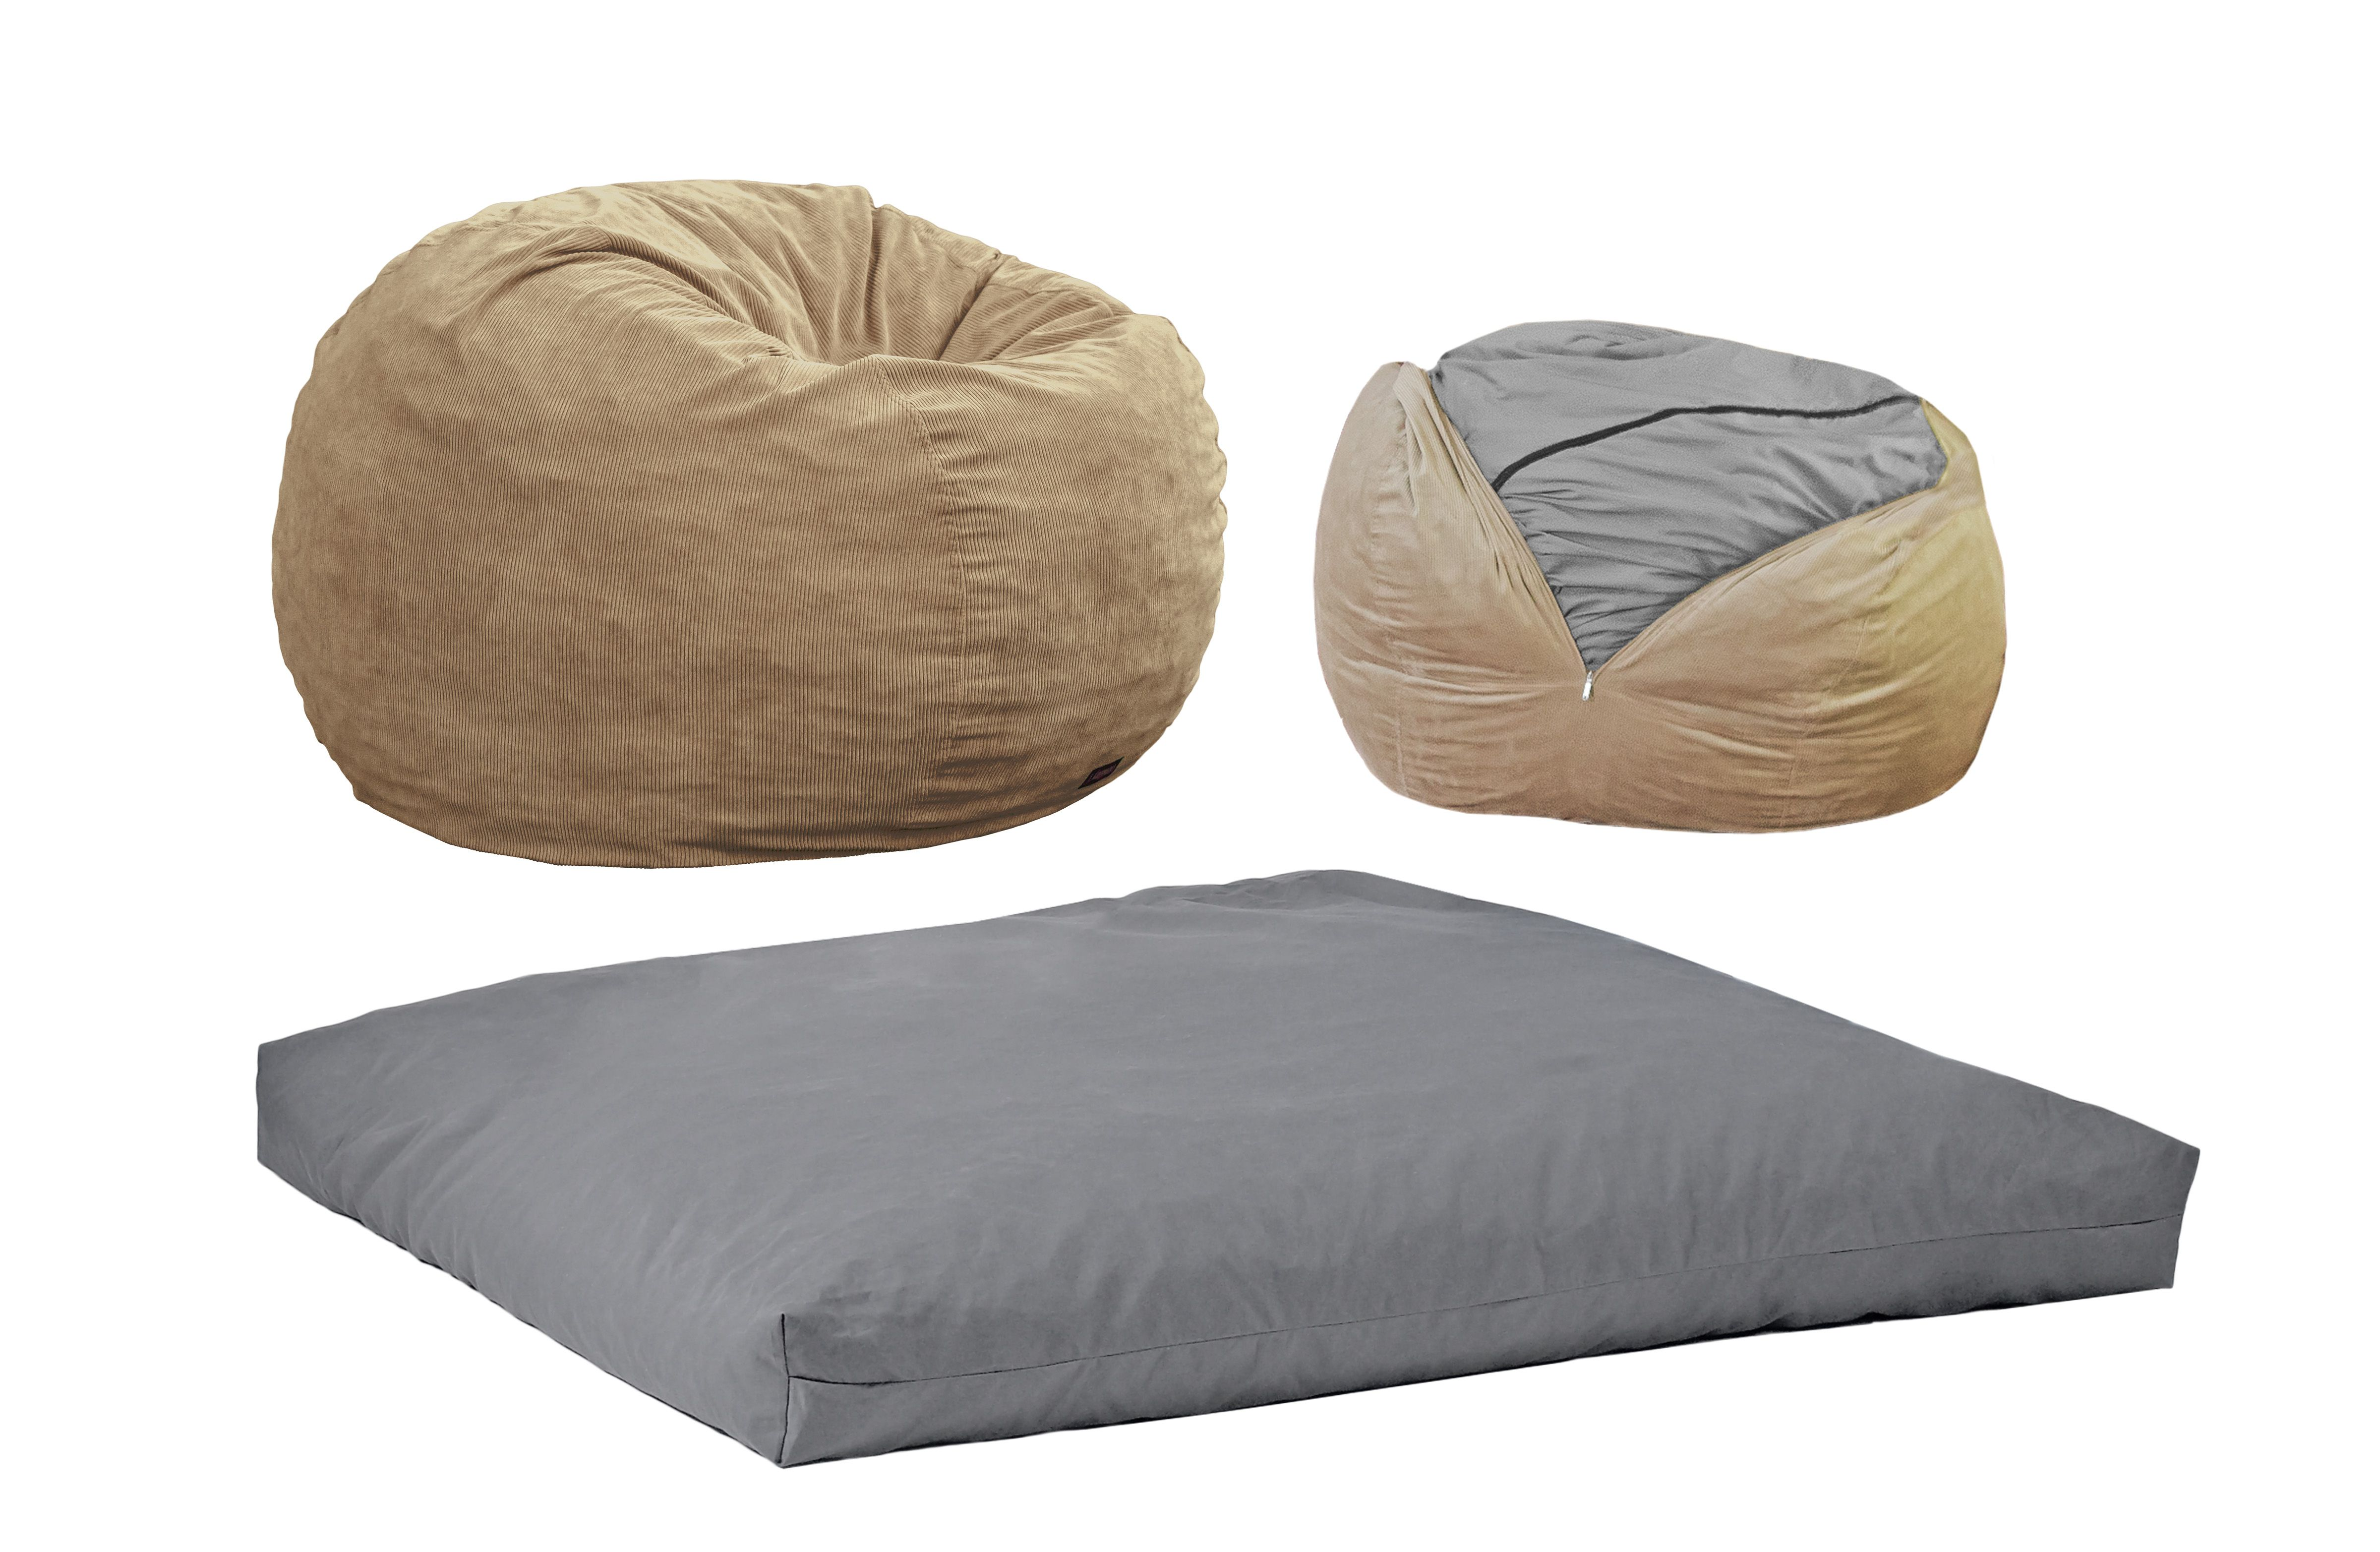 Cordaroy S Lounge In Comfort And Style This Bean Bag Chair Also